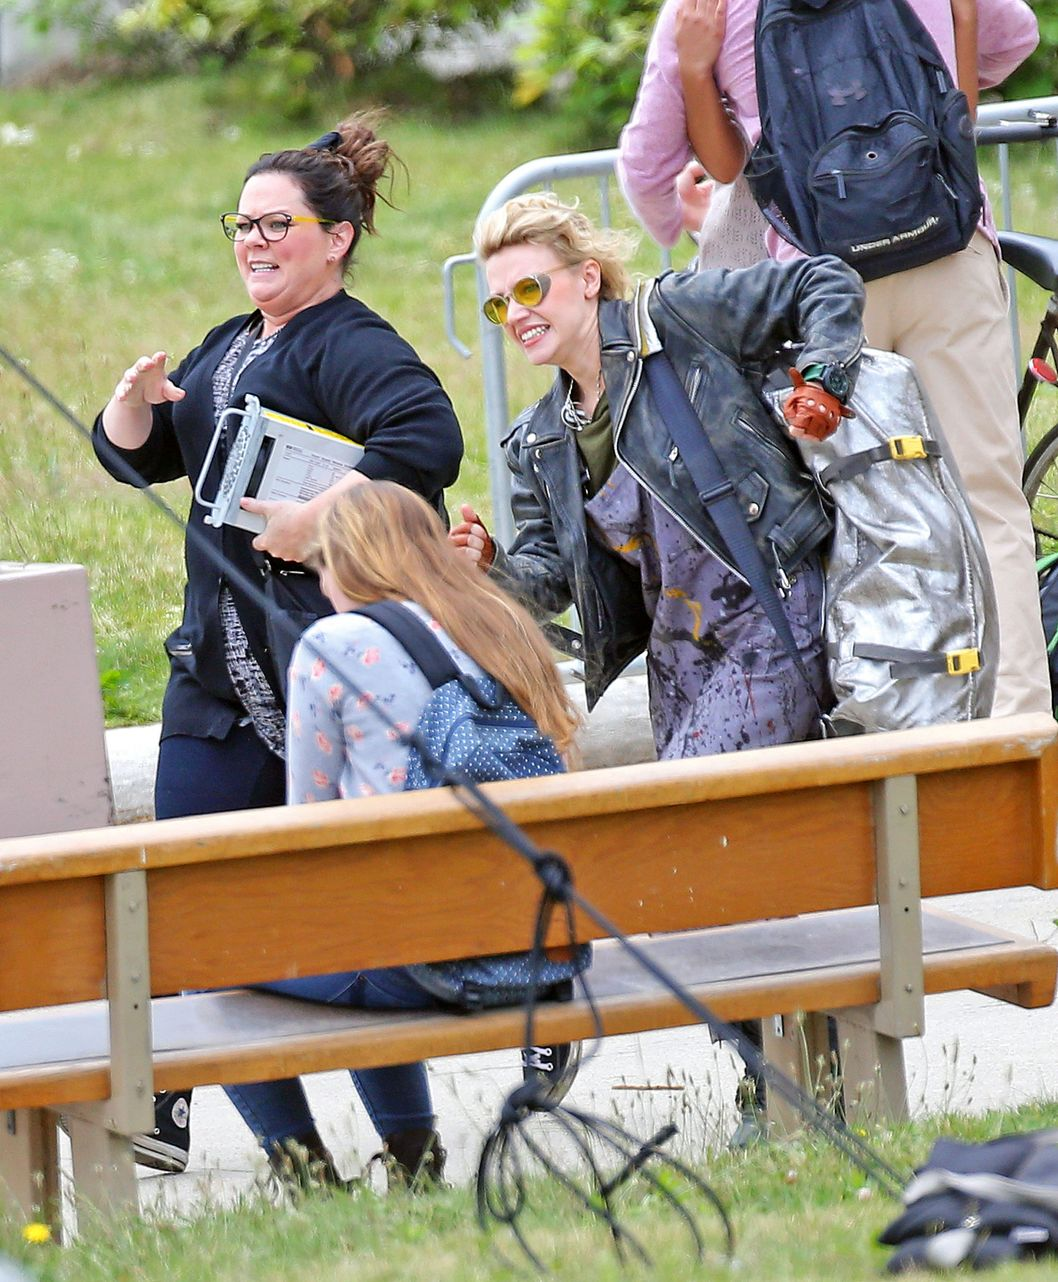 Melissa McCarthy, Kate McKinnon, and Kristin Wiig all together for 1st day of filming all girl 'Ghostbusters' in Boston with slime on pants and ghost trap